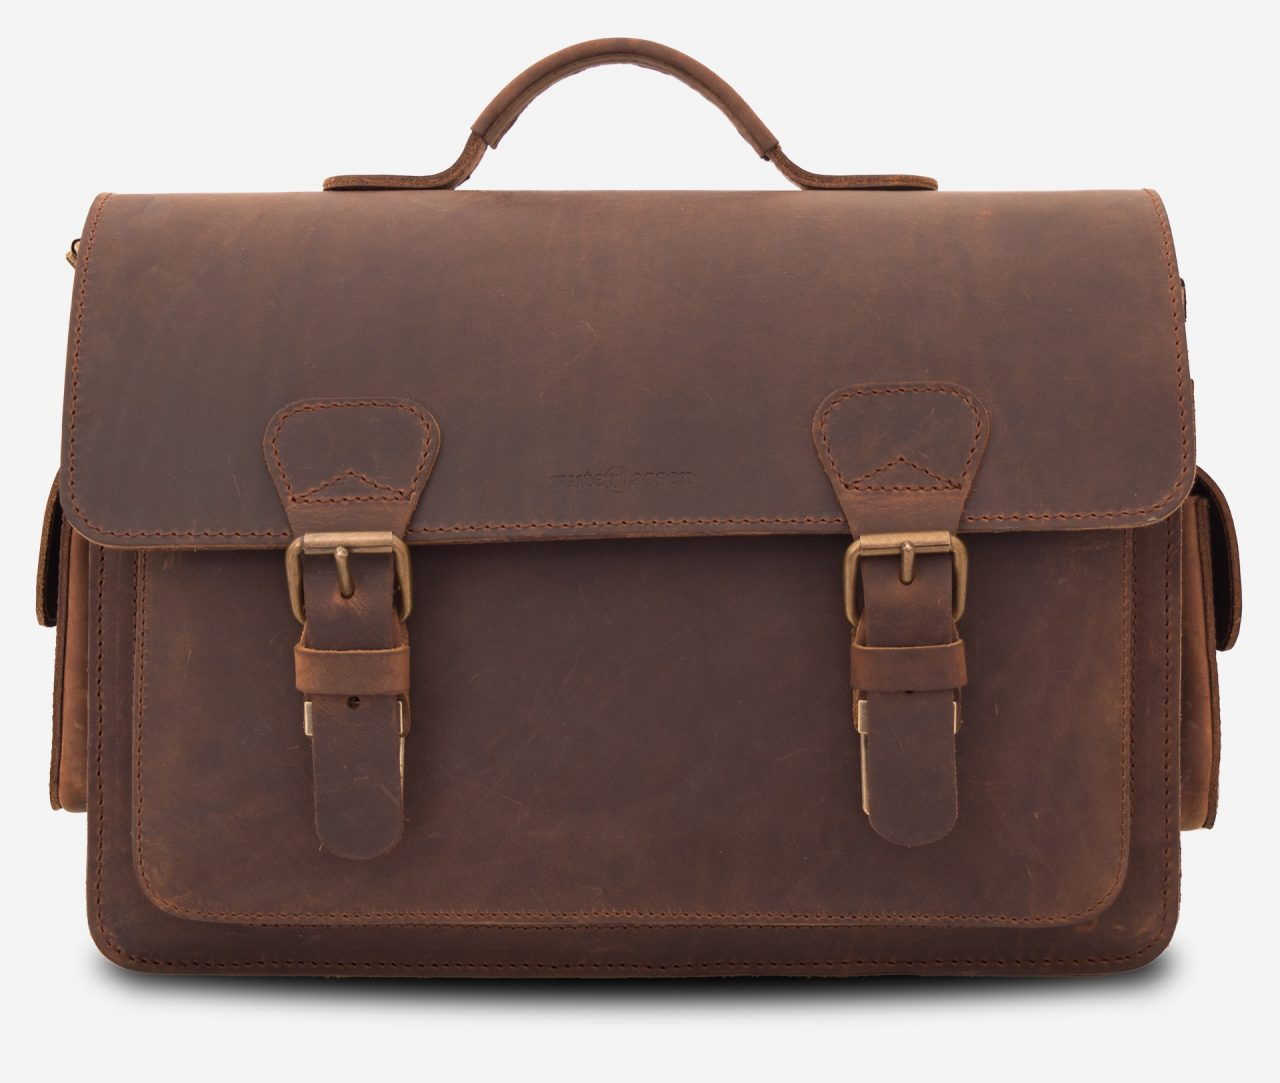 Vegetable tanned brown leather camera bag by Ruitertassen.